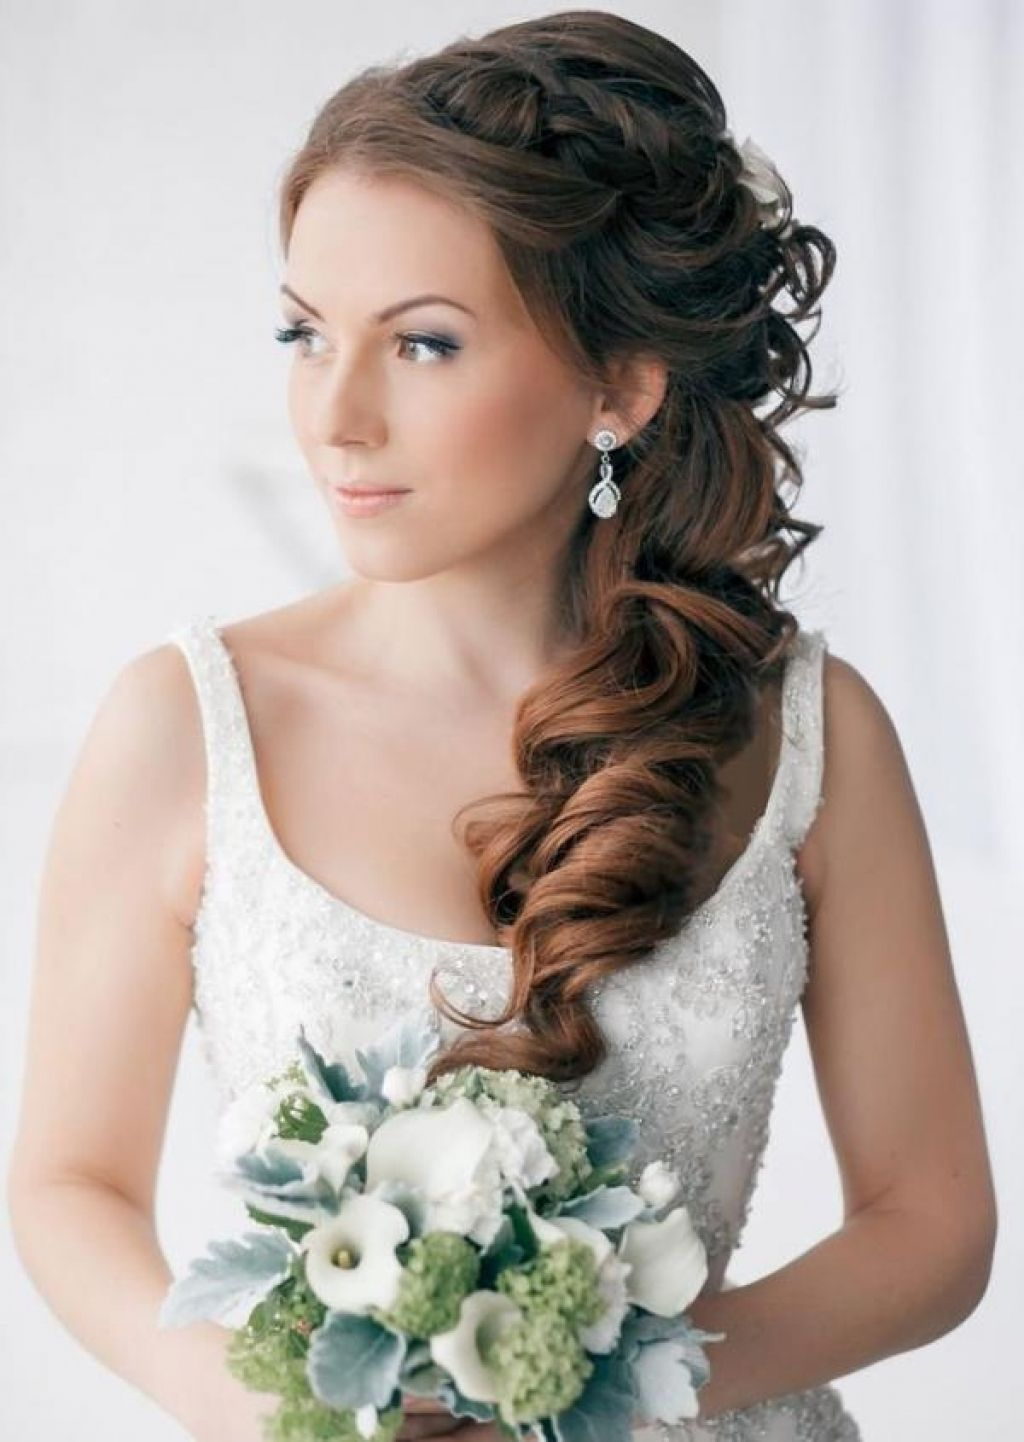 simple wedding wedding dresses and hairstyles